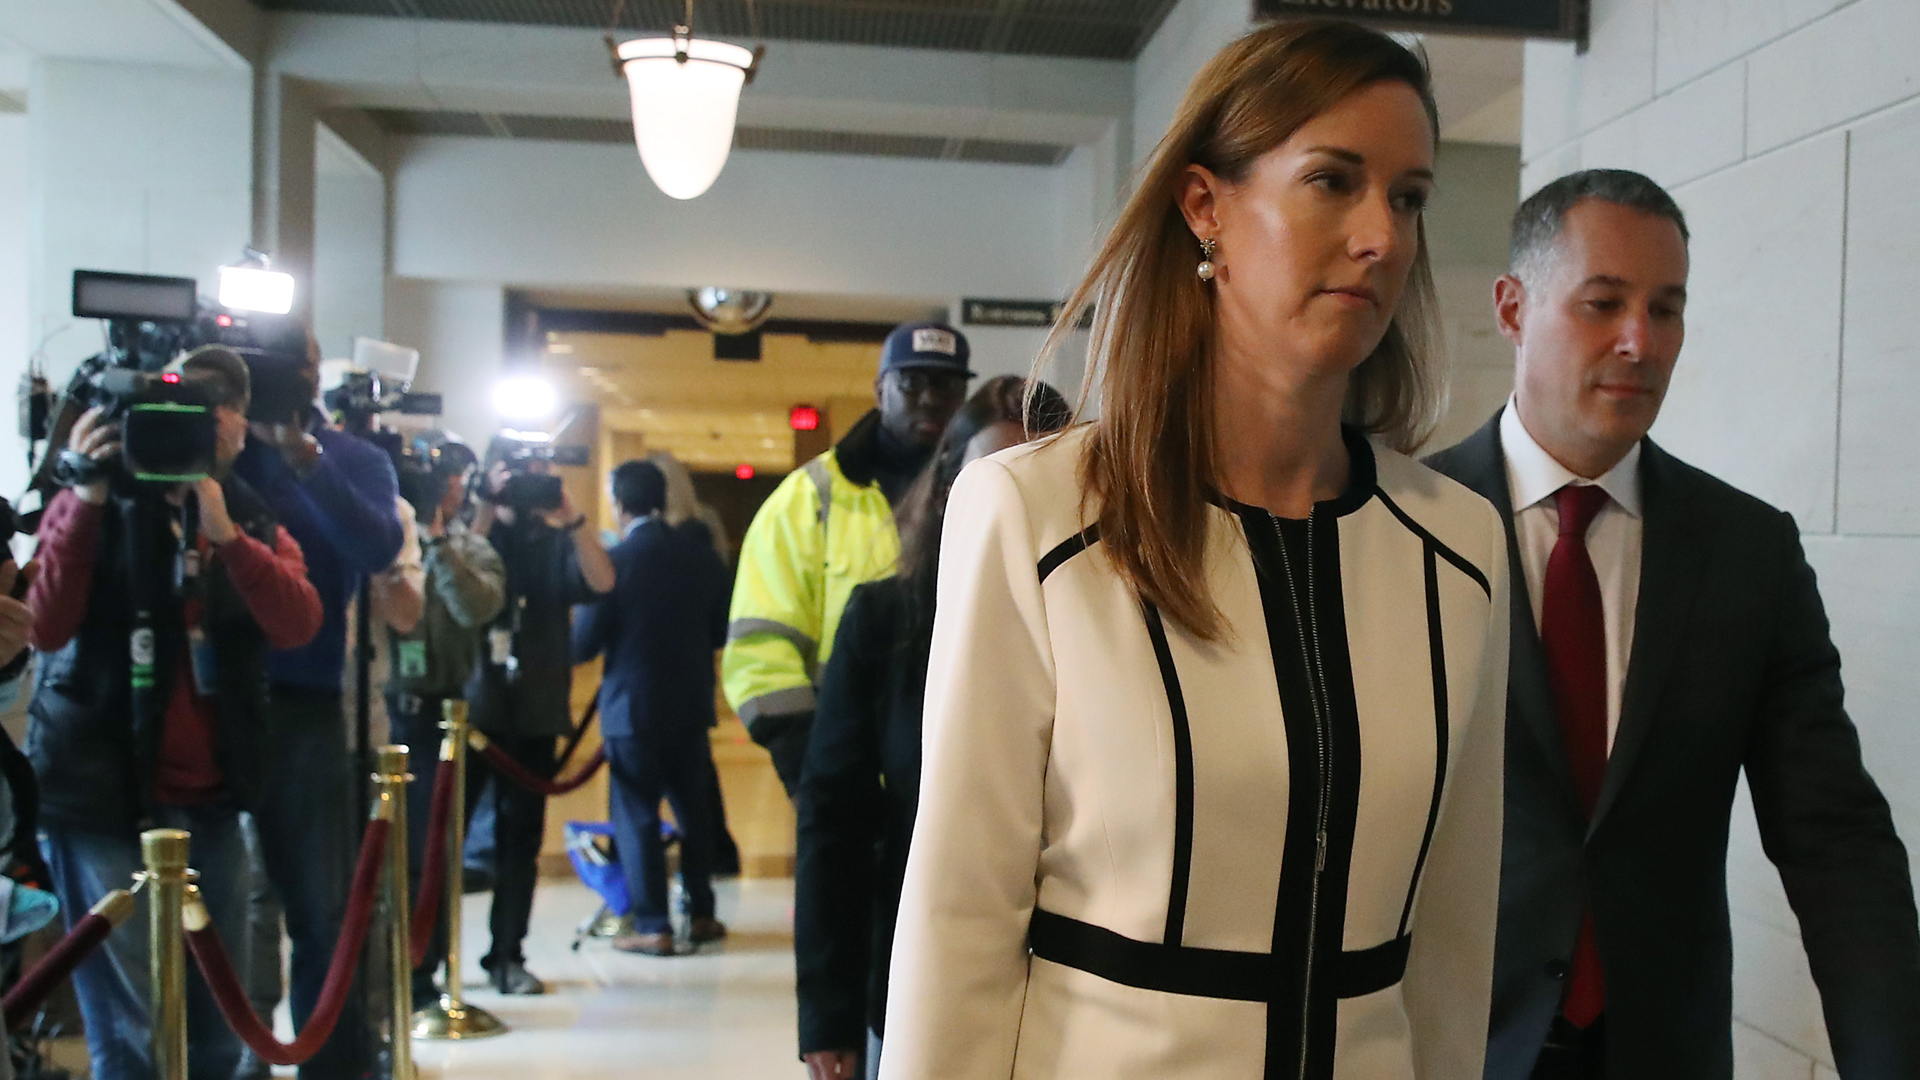 Jennifer Williams, foreign service officer at the State Department, departs from closed-door deposition, on Nov. 7, 2019, in Washington, D.C. (Credit: Mark Wilson/Getty Images)